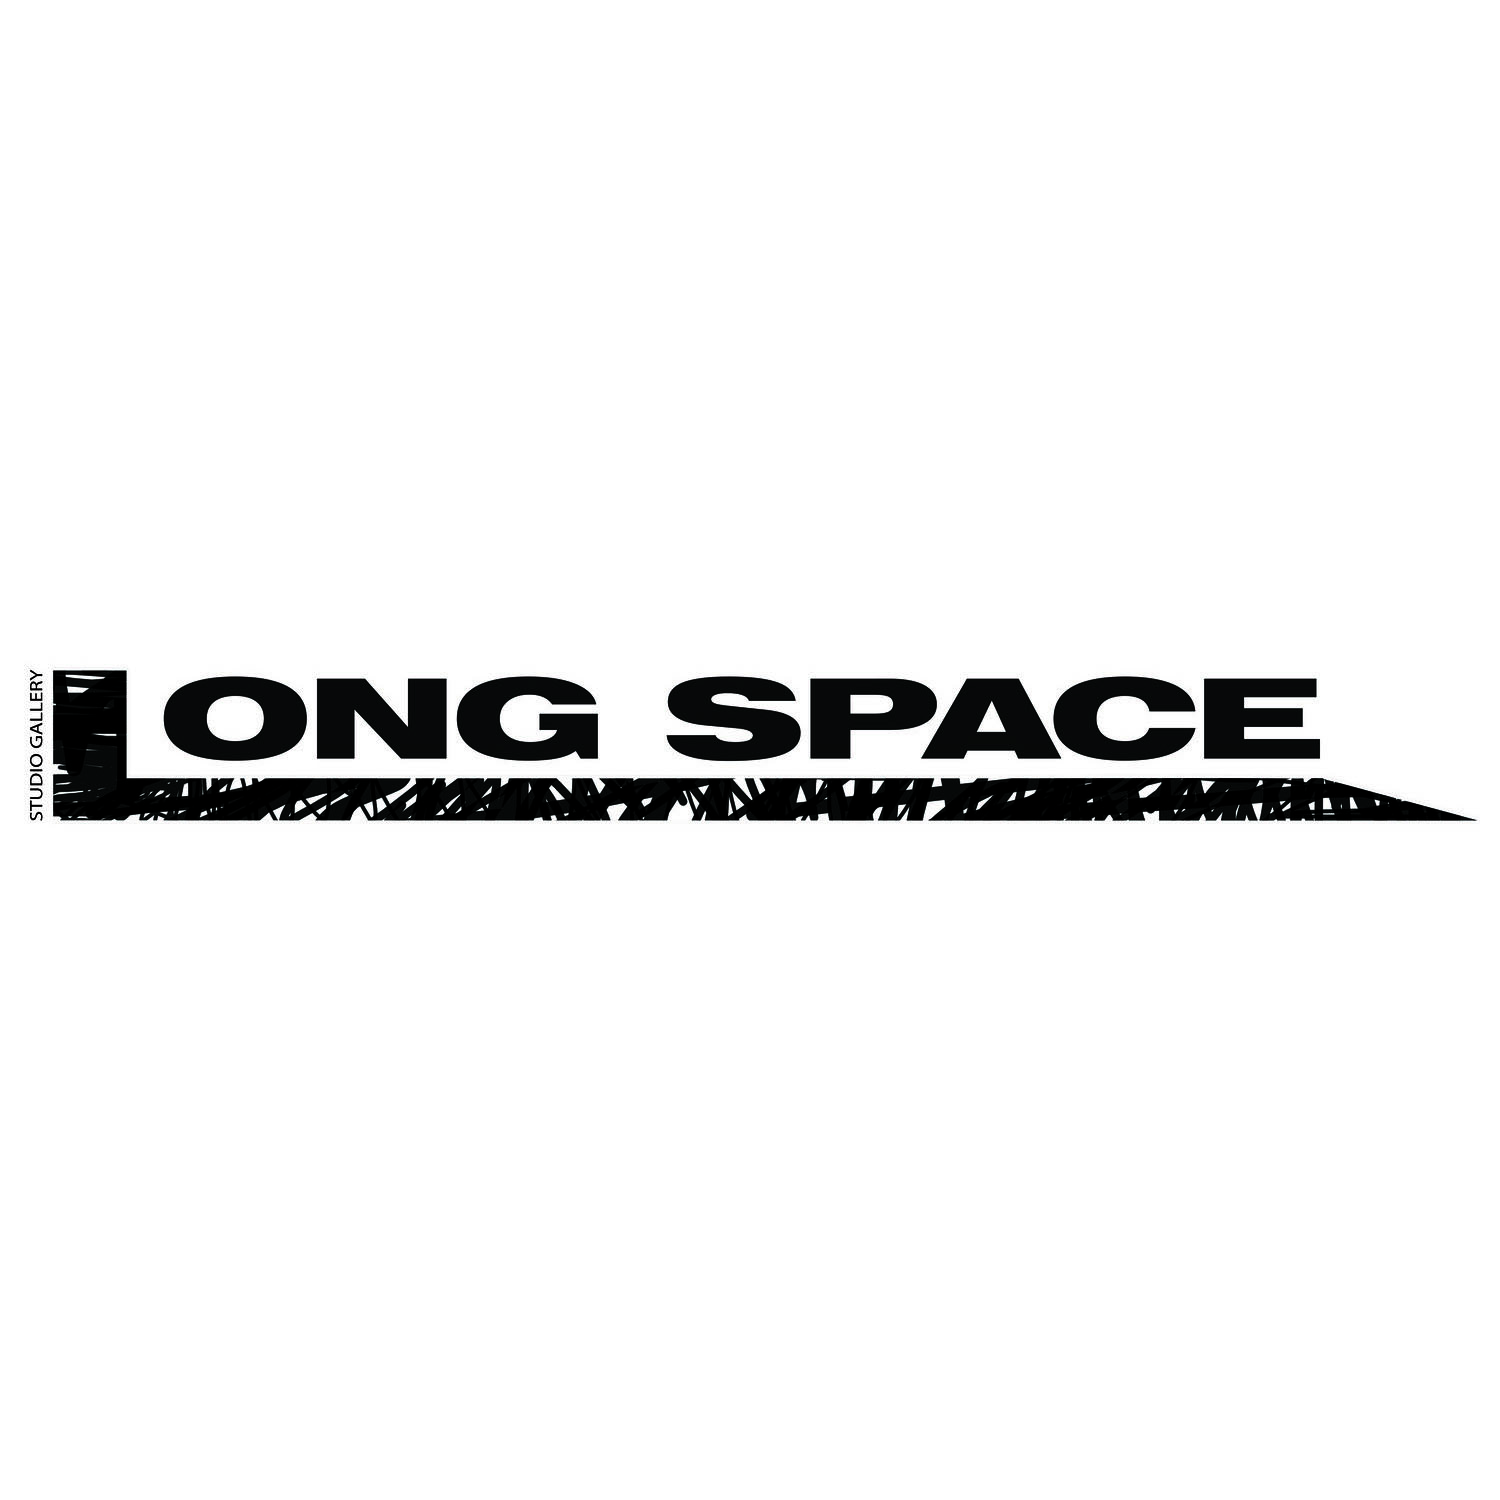 Long Space